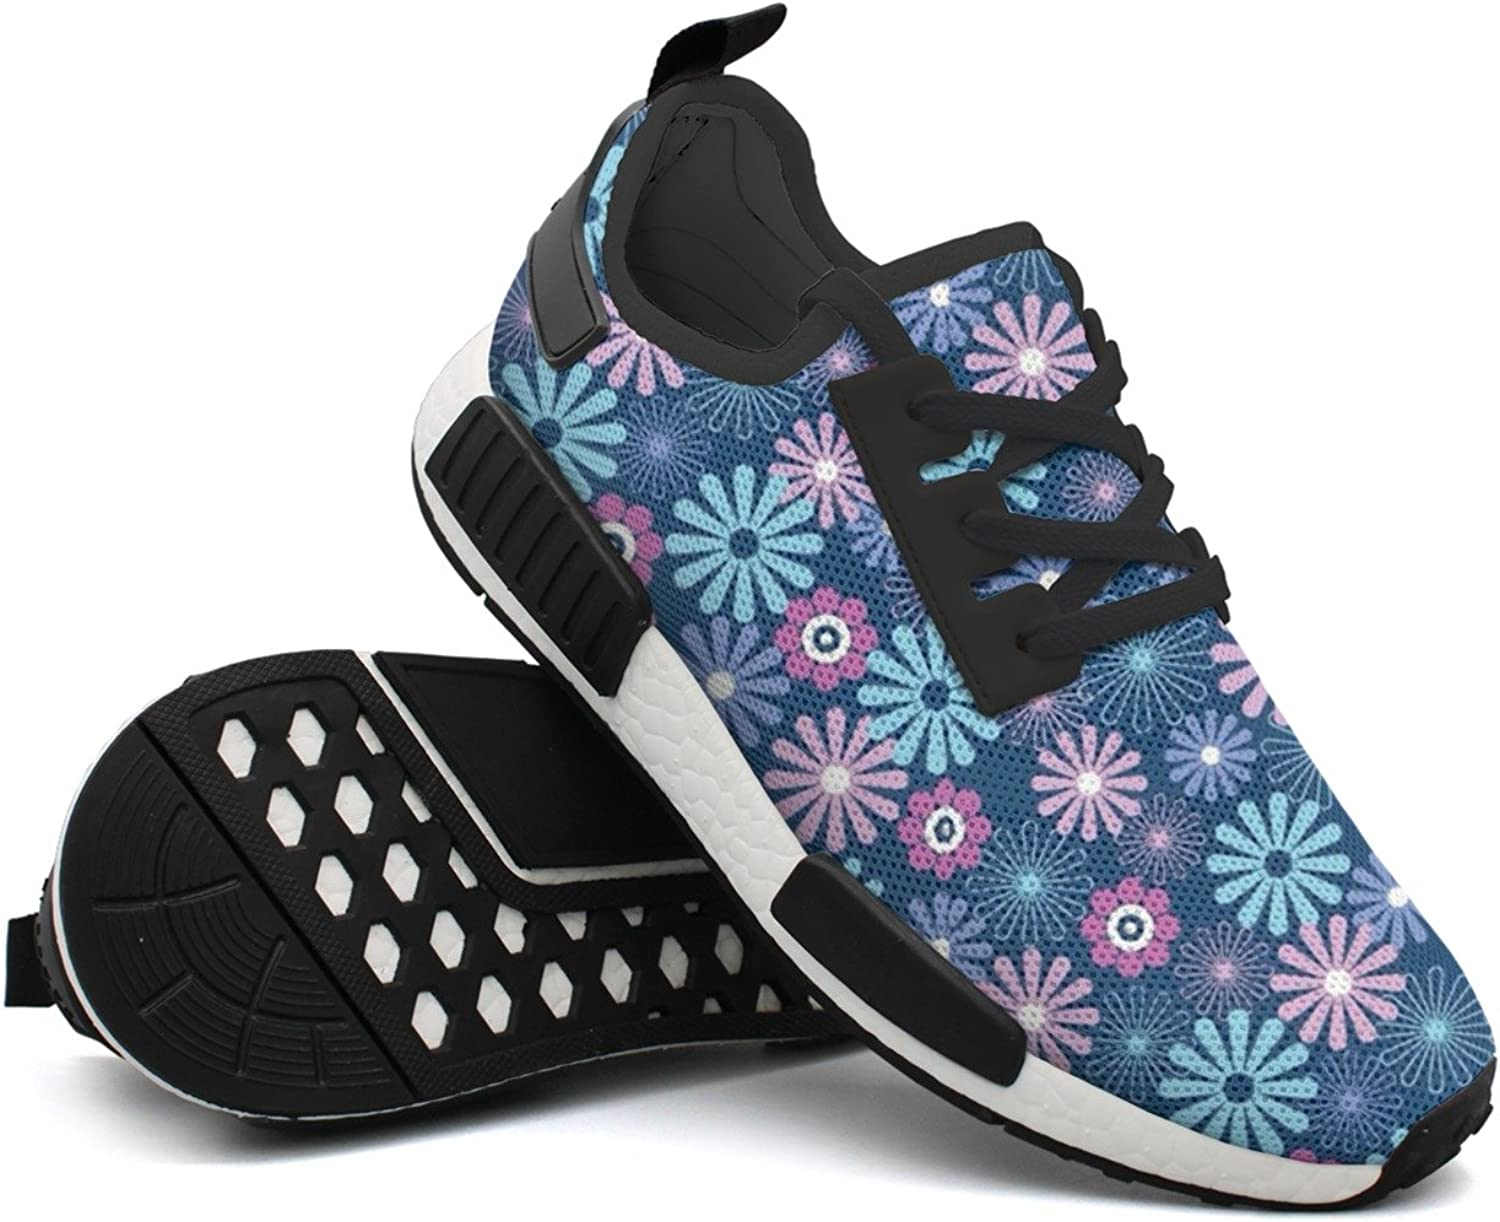 Fashion Sneakers shoes For Men Daisy Flower Pattern Cool Lightweight Breathable Mesh Mens Sneakers